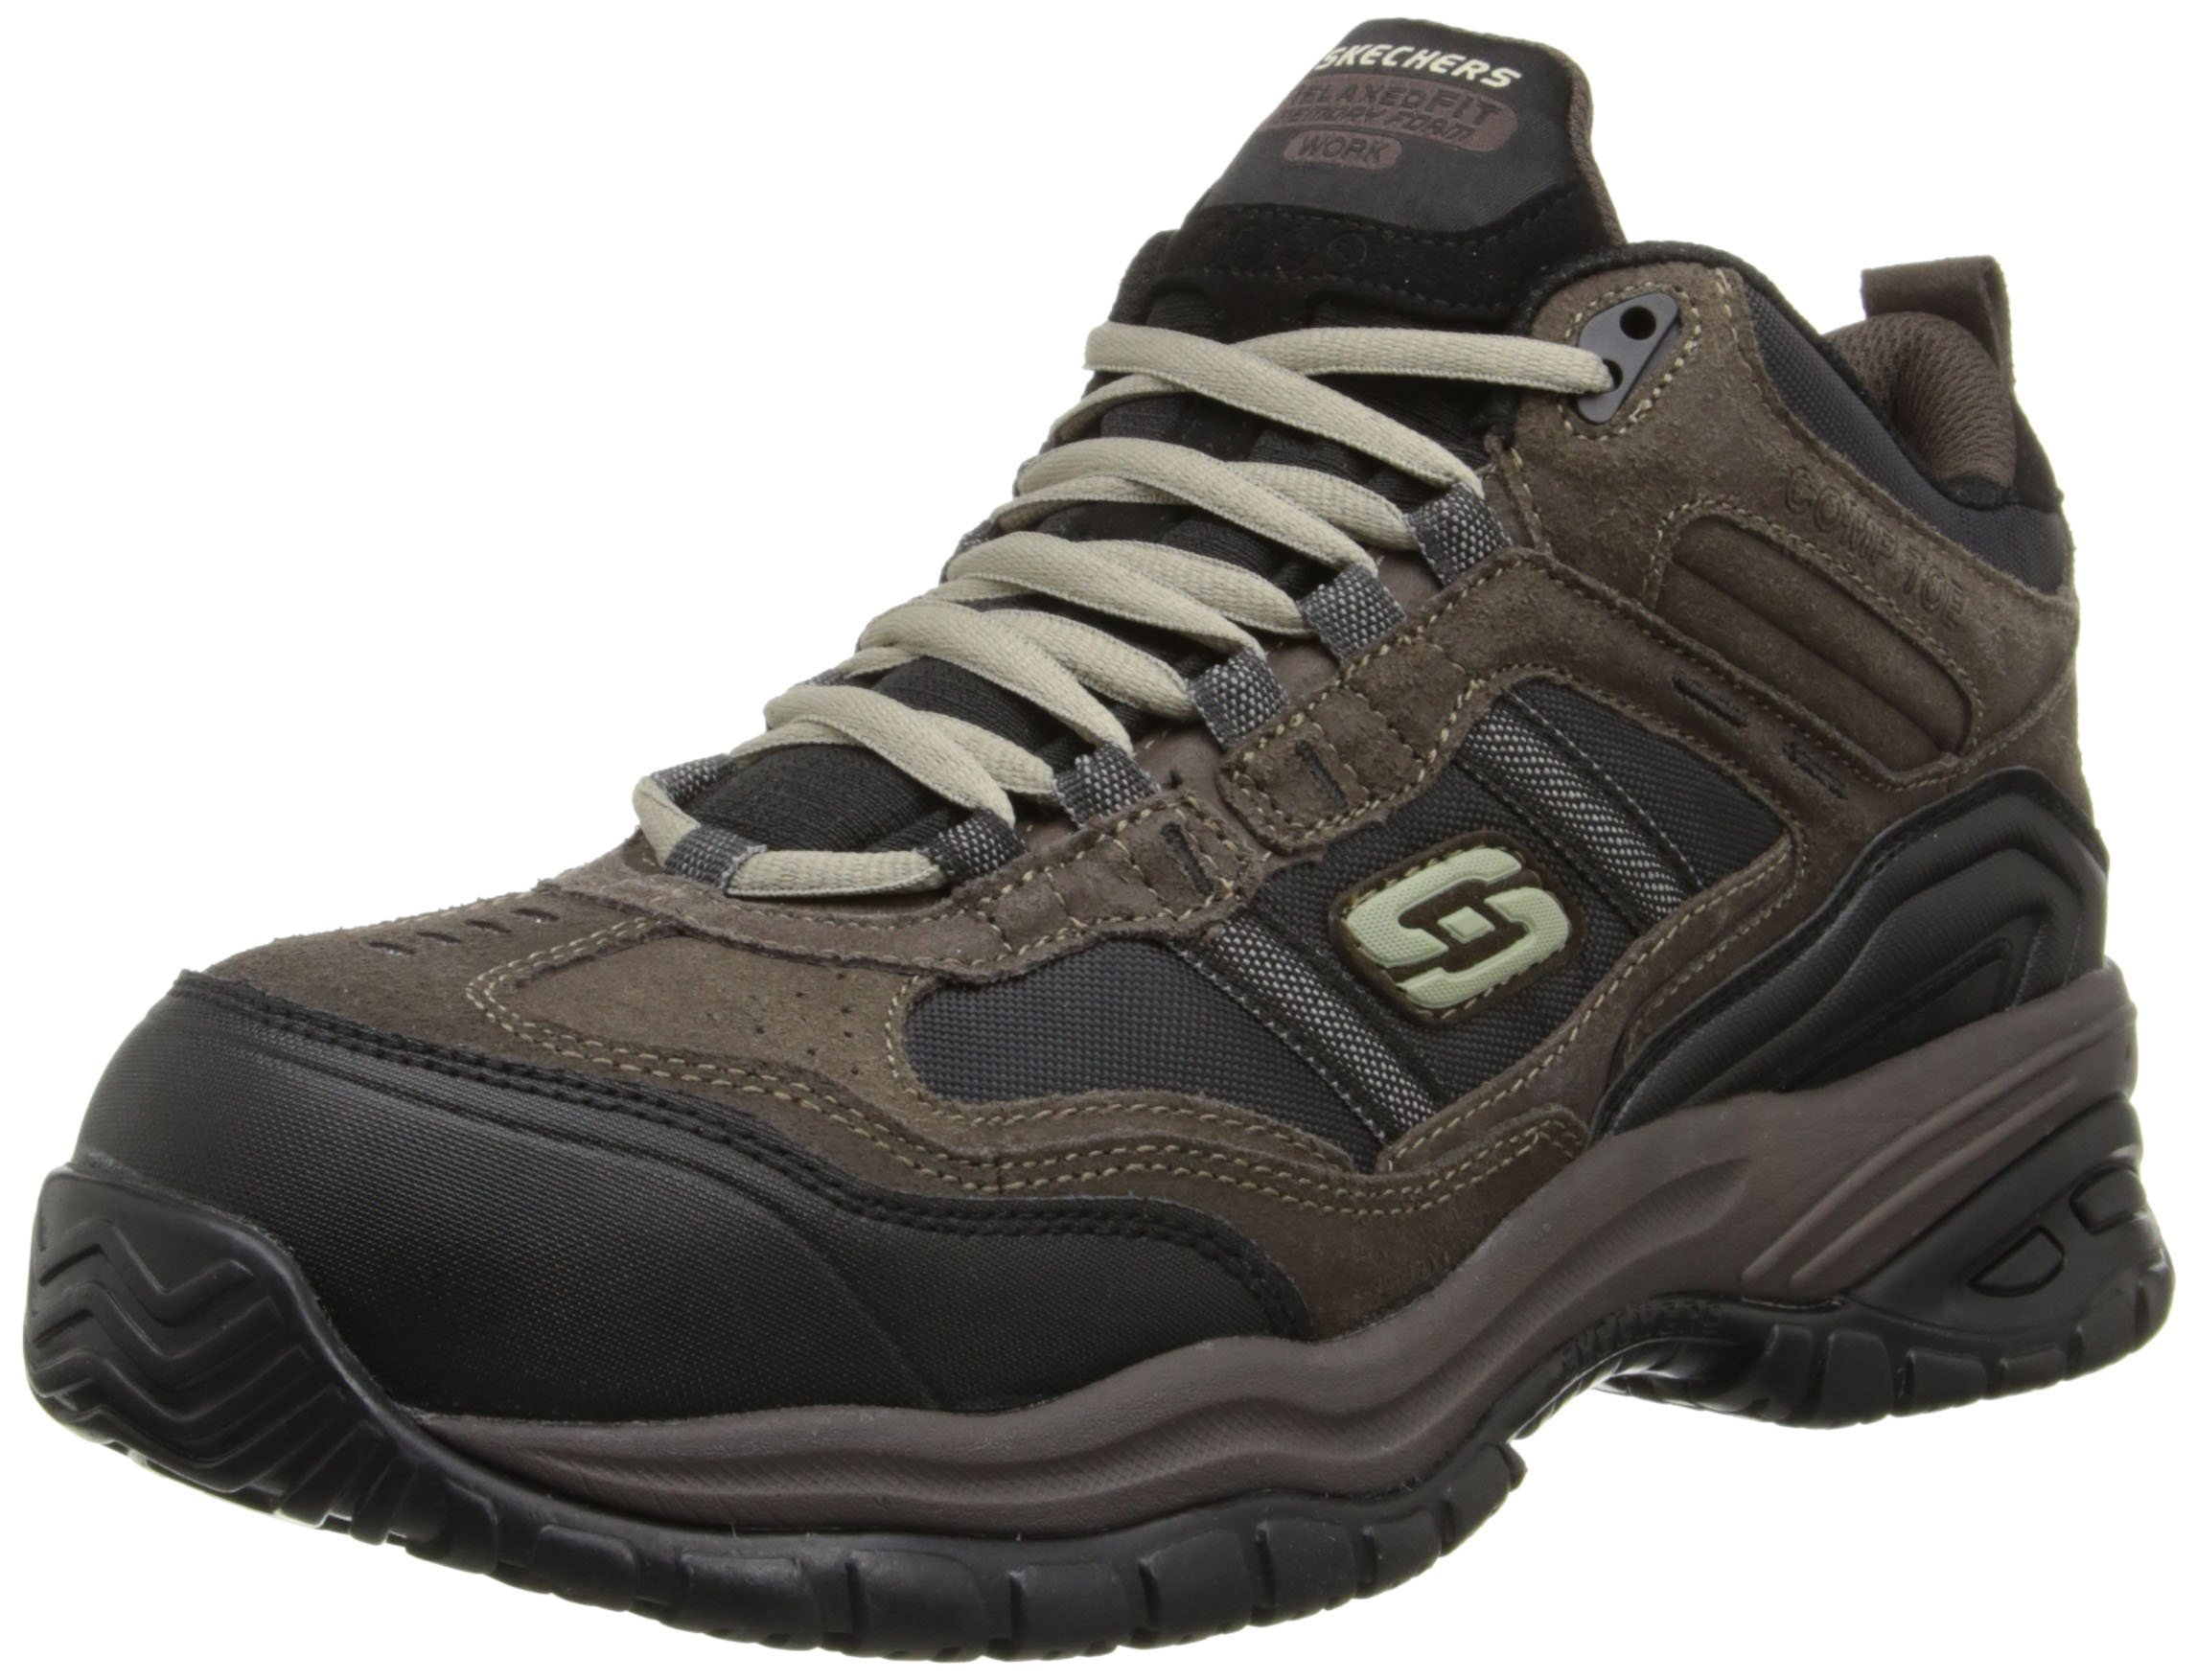 Skechers Men's Work Relaxed Fit Soft Stride Canopy Comp Toe Shoe, Brown/Black - 11 D(M) US by Skechers